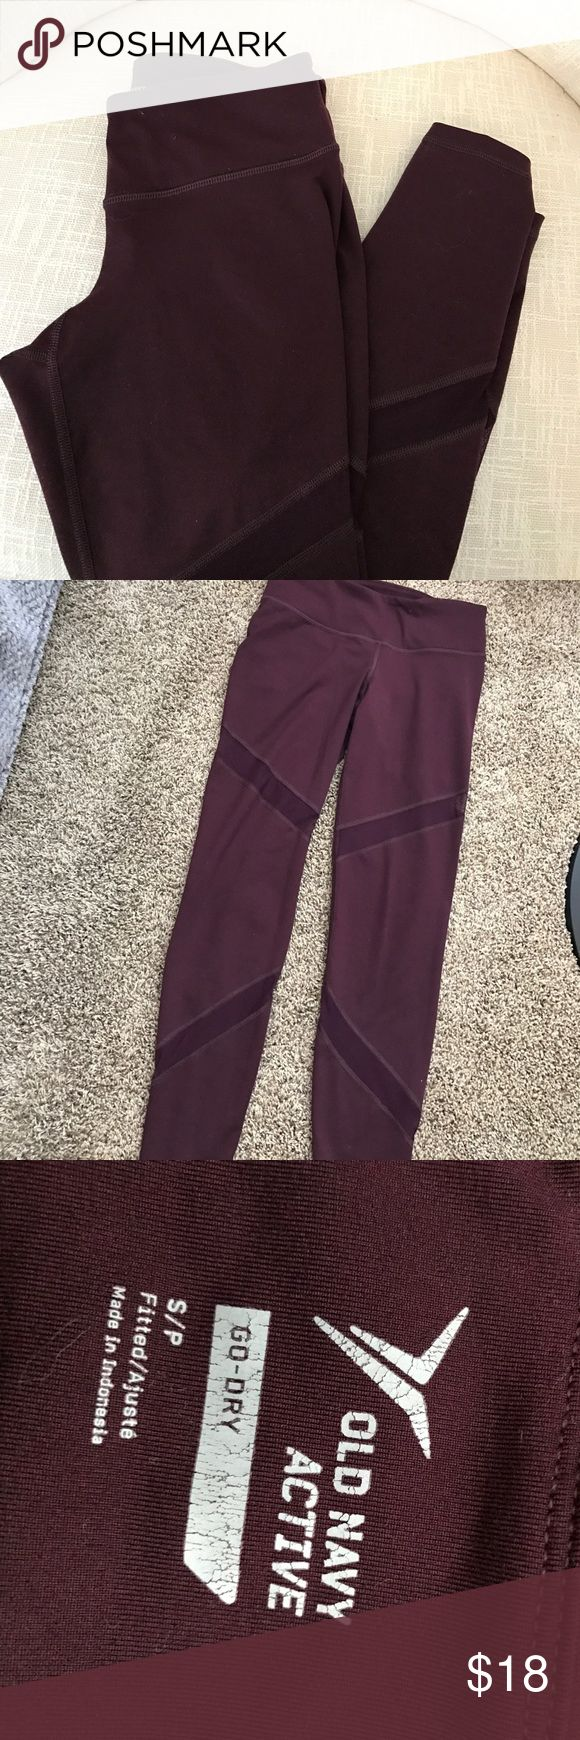 Maroon Mesh Old Navy Leggings Only worn a handful of times. Extremely cute leggings. Definitely a favorite pair I've had, but need to slim down my leggings collection. Old Navy Pants Leggings